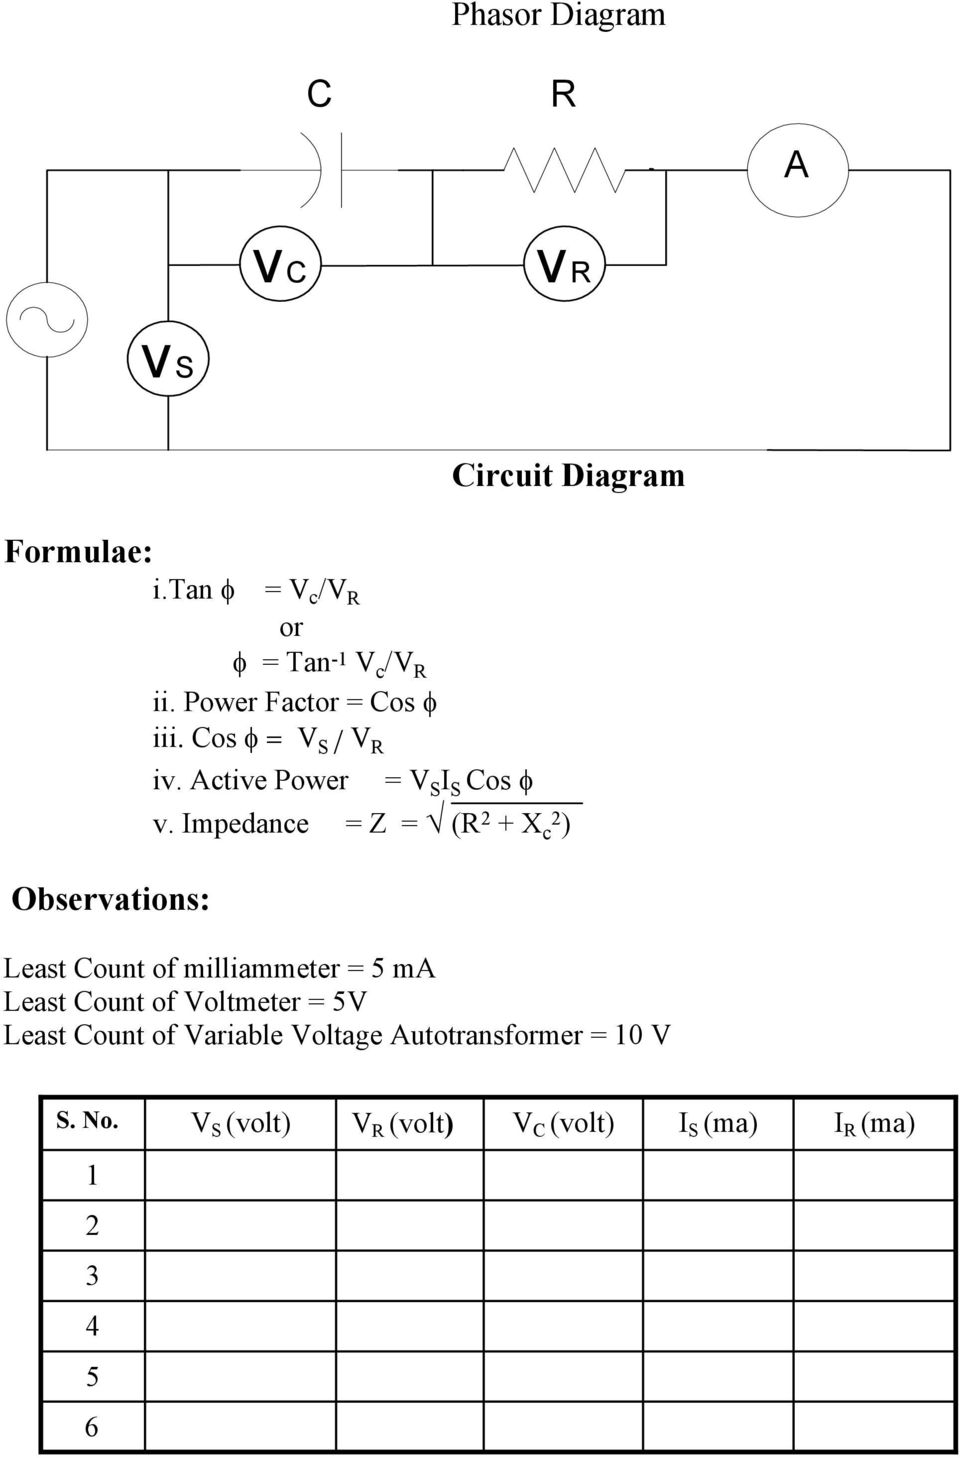 Impedance = Z = (R 2 + X c2 ) Least Count of milliammeter = 5 ma Least Count of Voltmeter = 5V Least